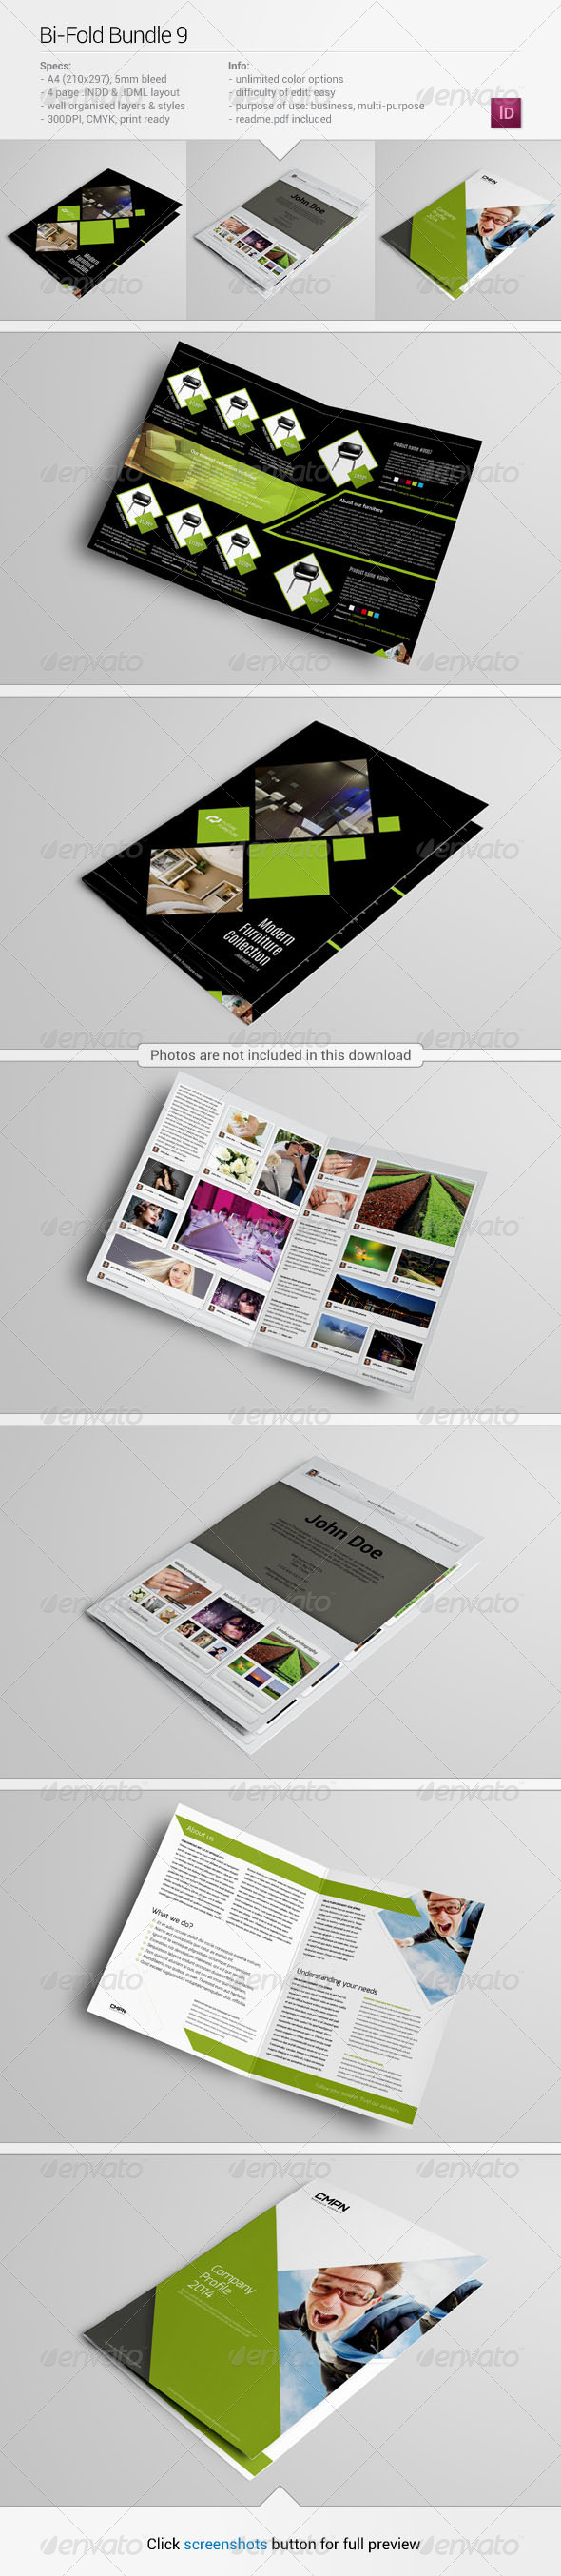 GraphicRiver Bi-Fold Bundle 9 6449975